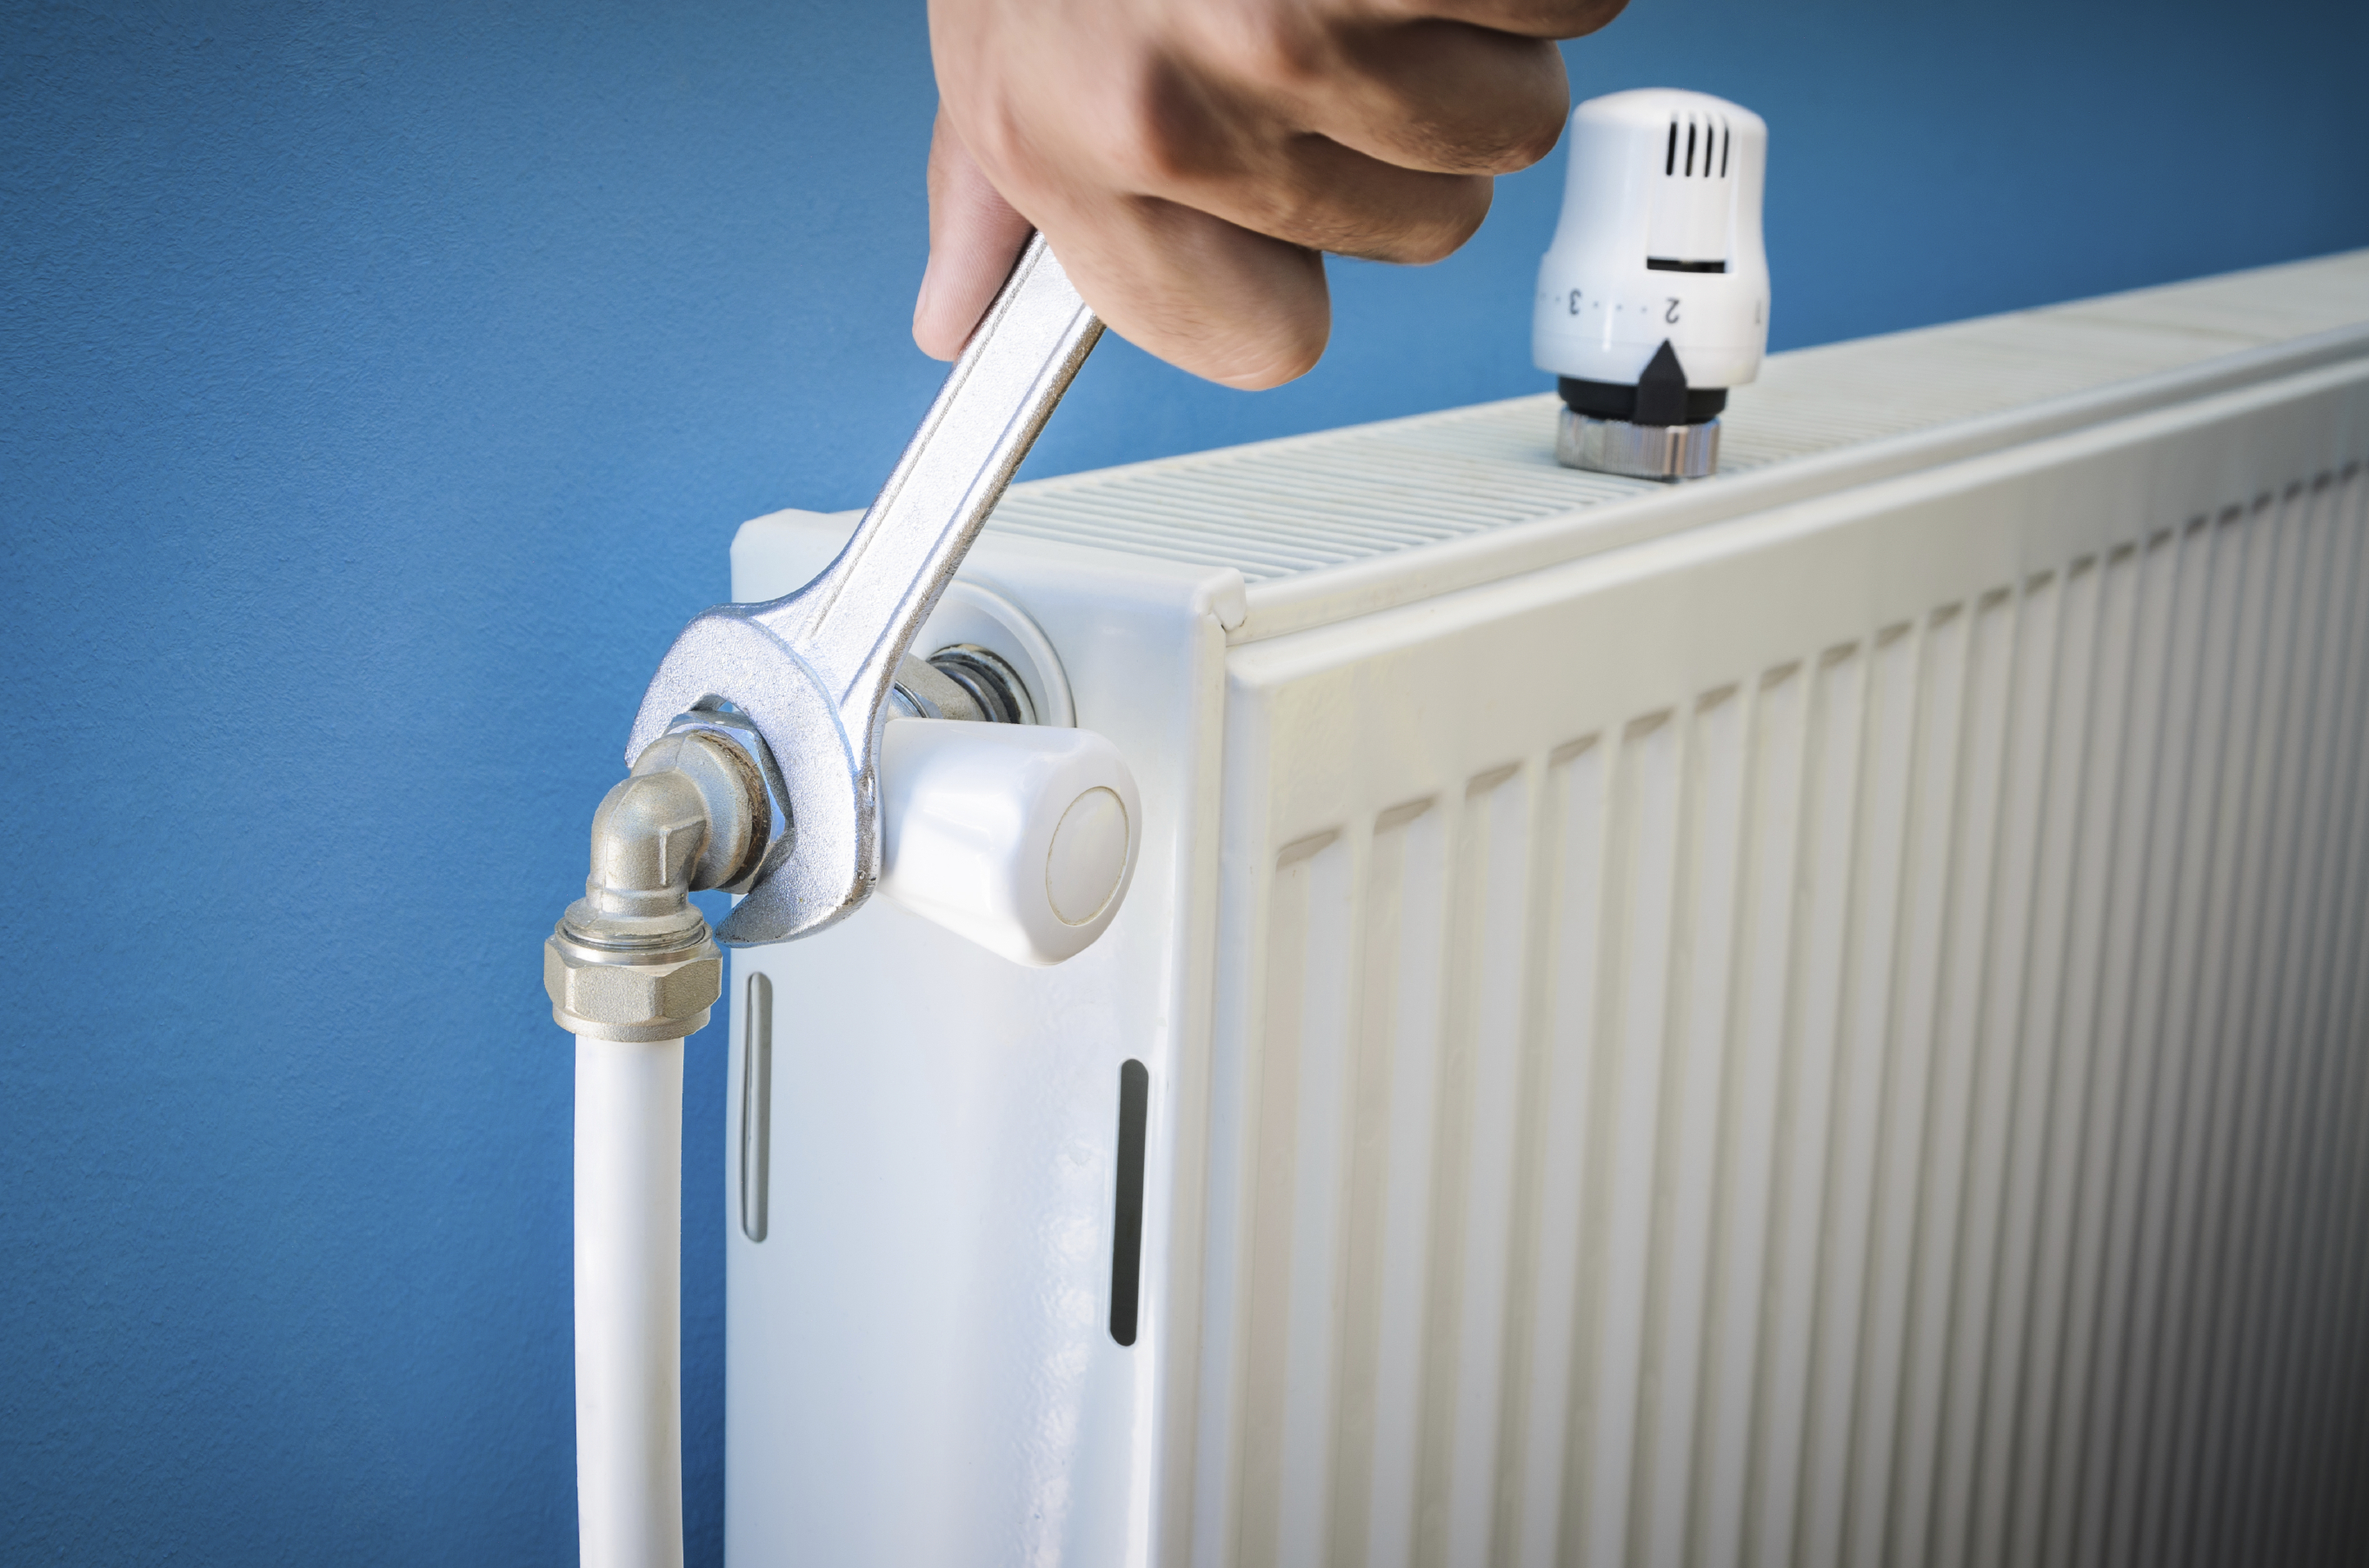 How To Bleed A Radiator The 5 Simple Steps Fresh Design